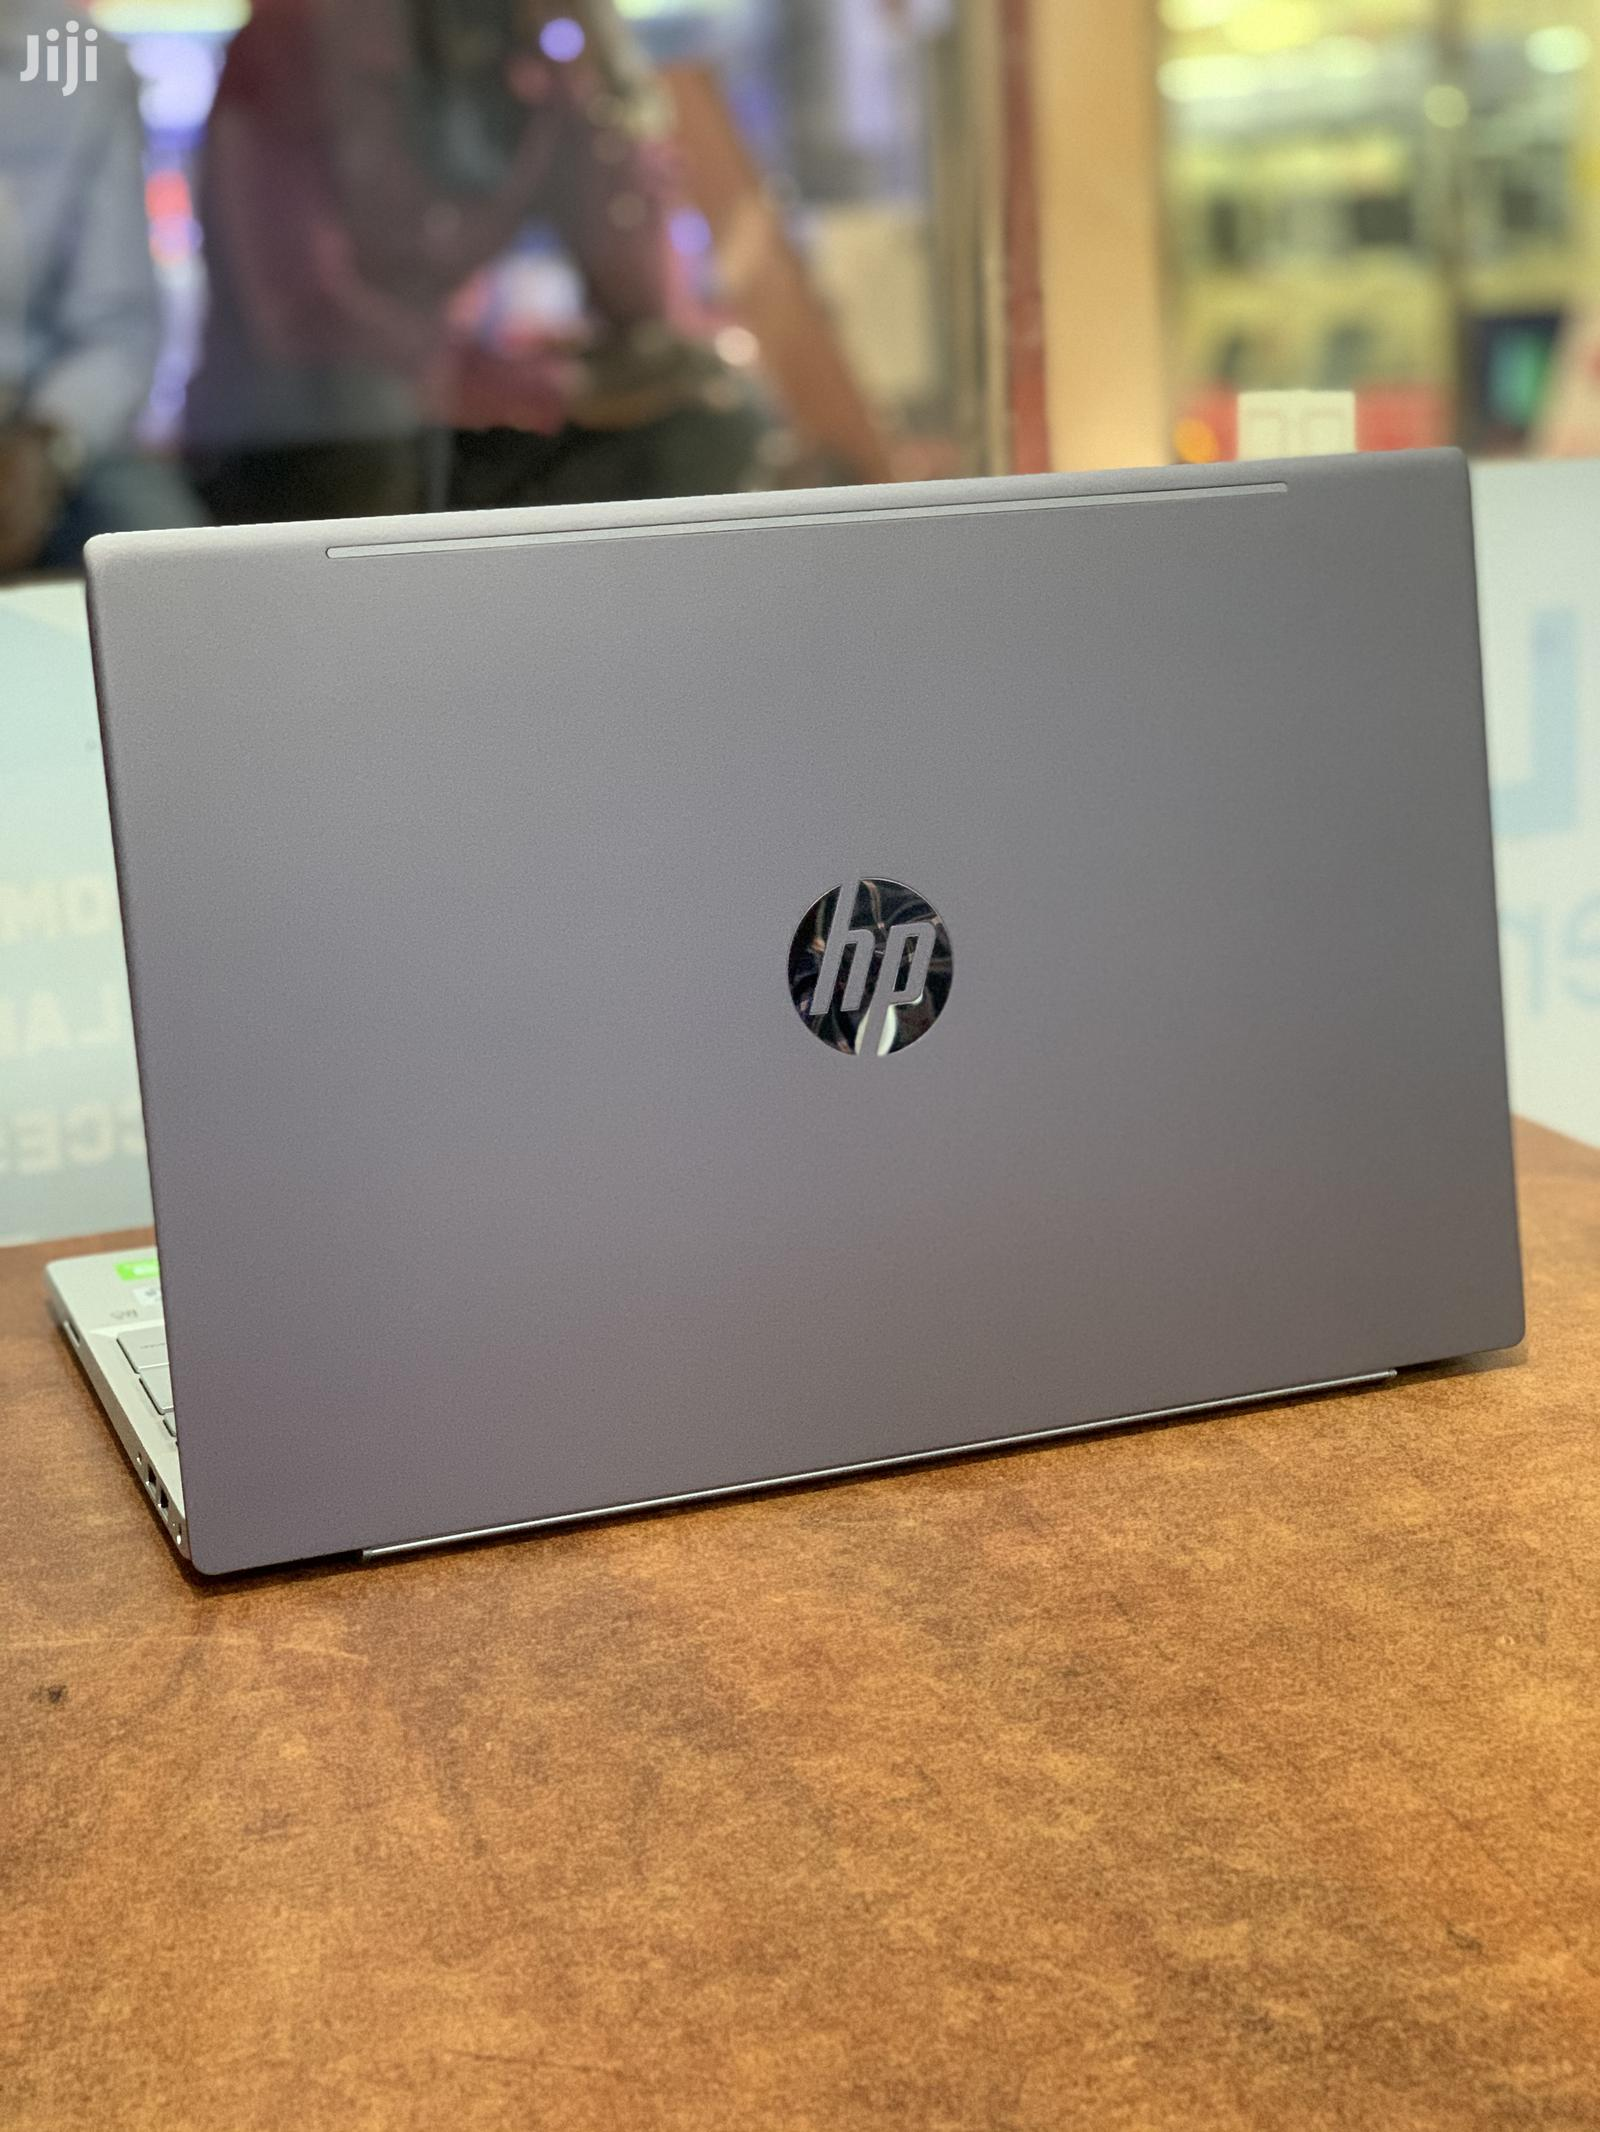 New Laptop HP Pavilion 15 8GB Intel Core I5 SSHD (Hybrid) 512GB | Laptops & Computers for sale in Kampala, Central Region, Uganda